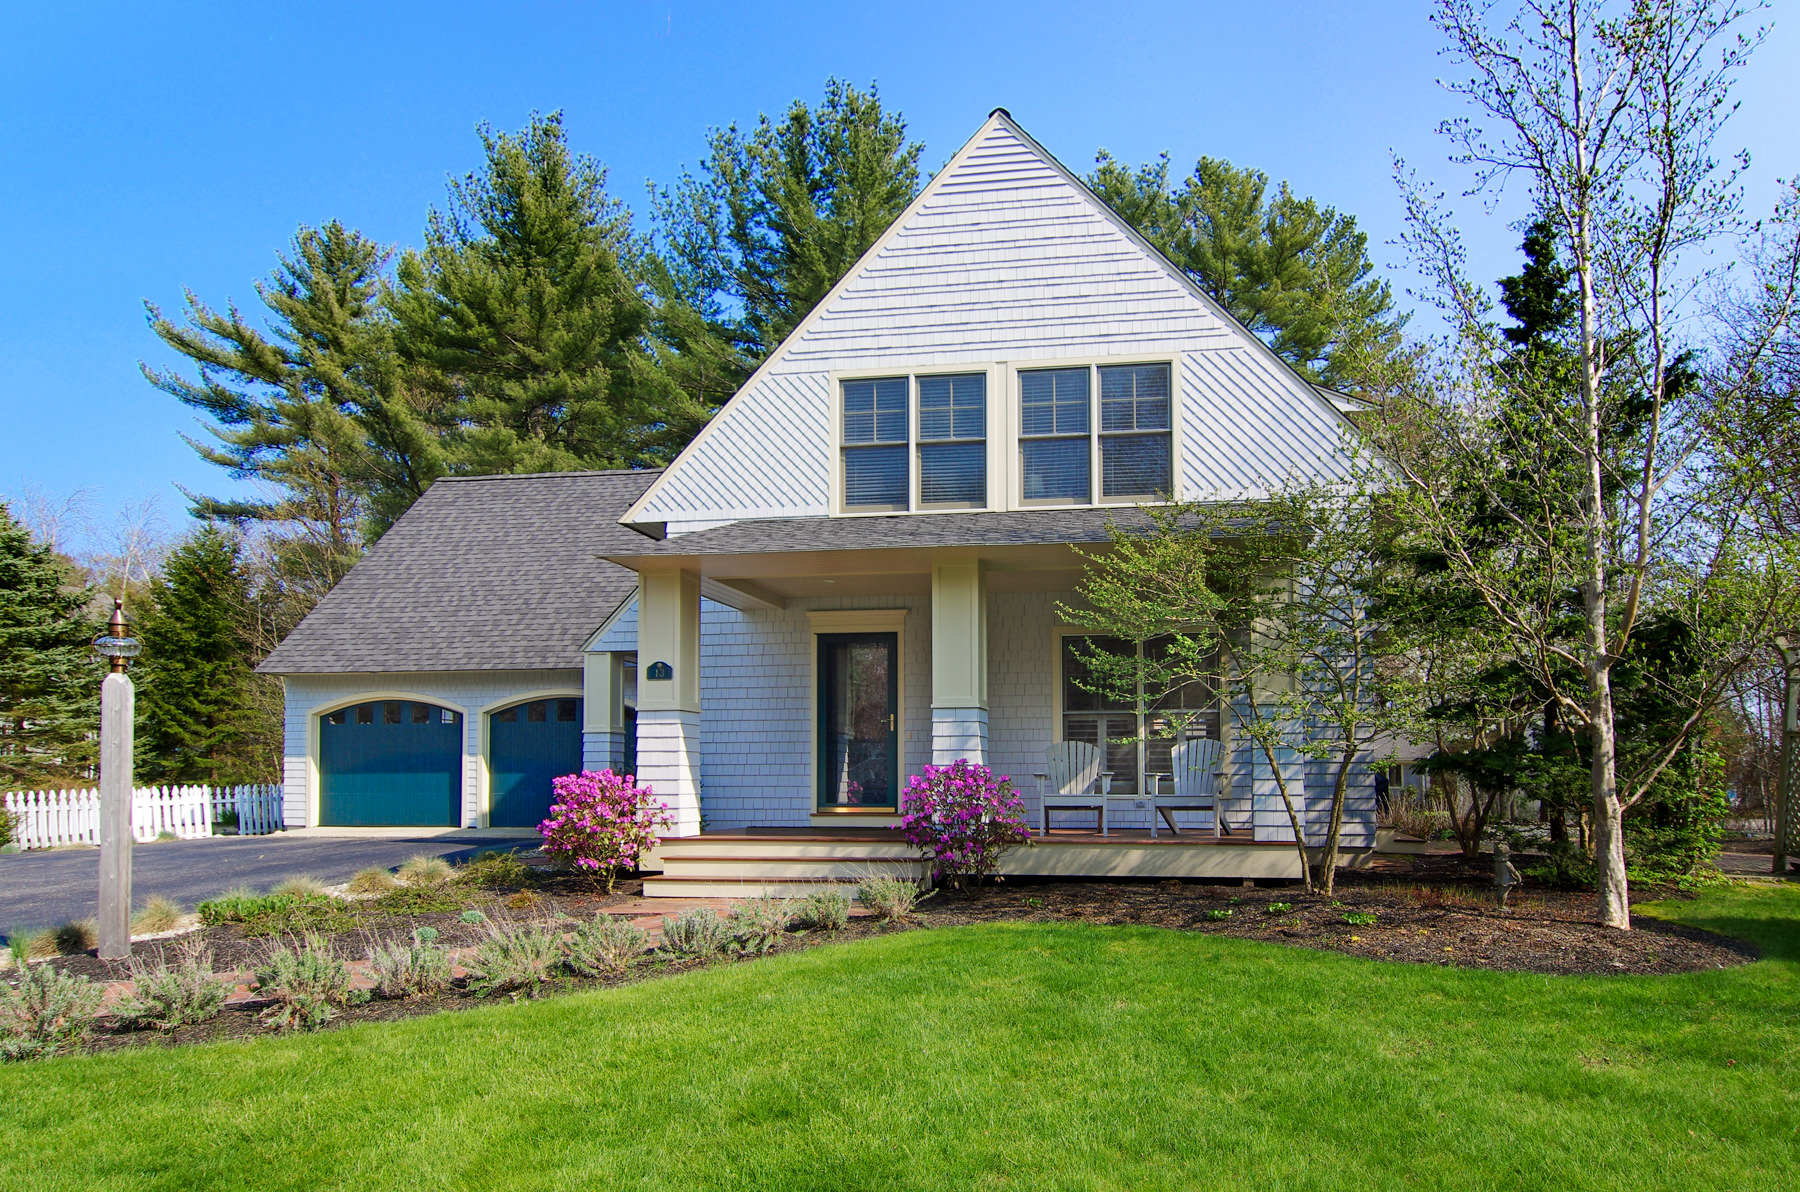 Single Family Home for Sale at 13 Seaborne 13 Seaborne Drive Yarmouth, Maine 04096 United States